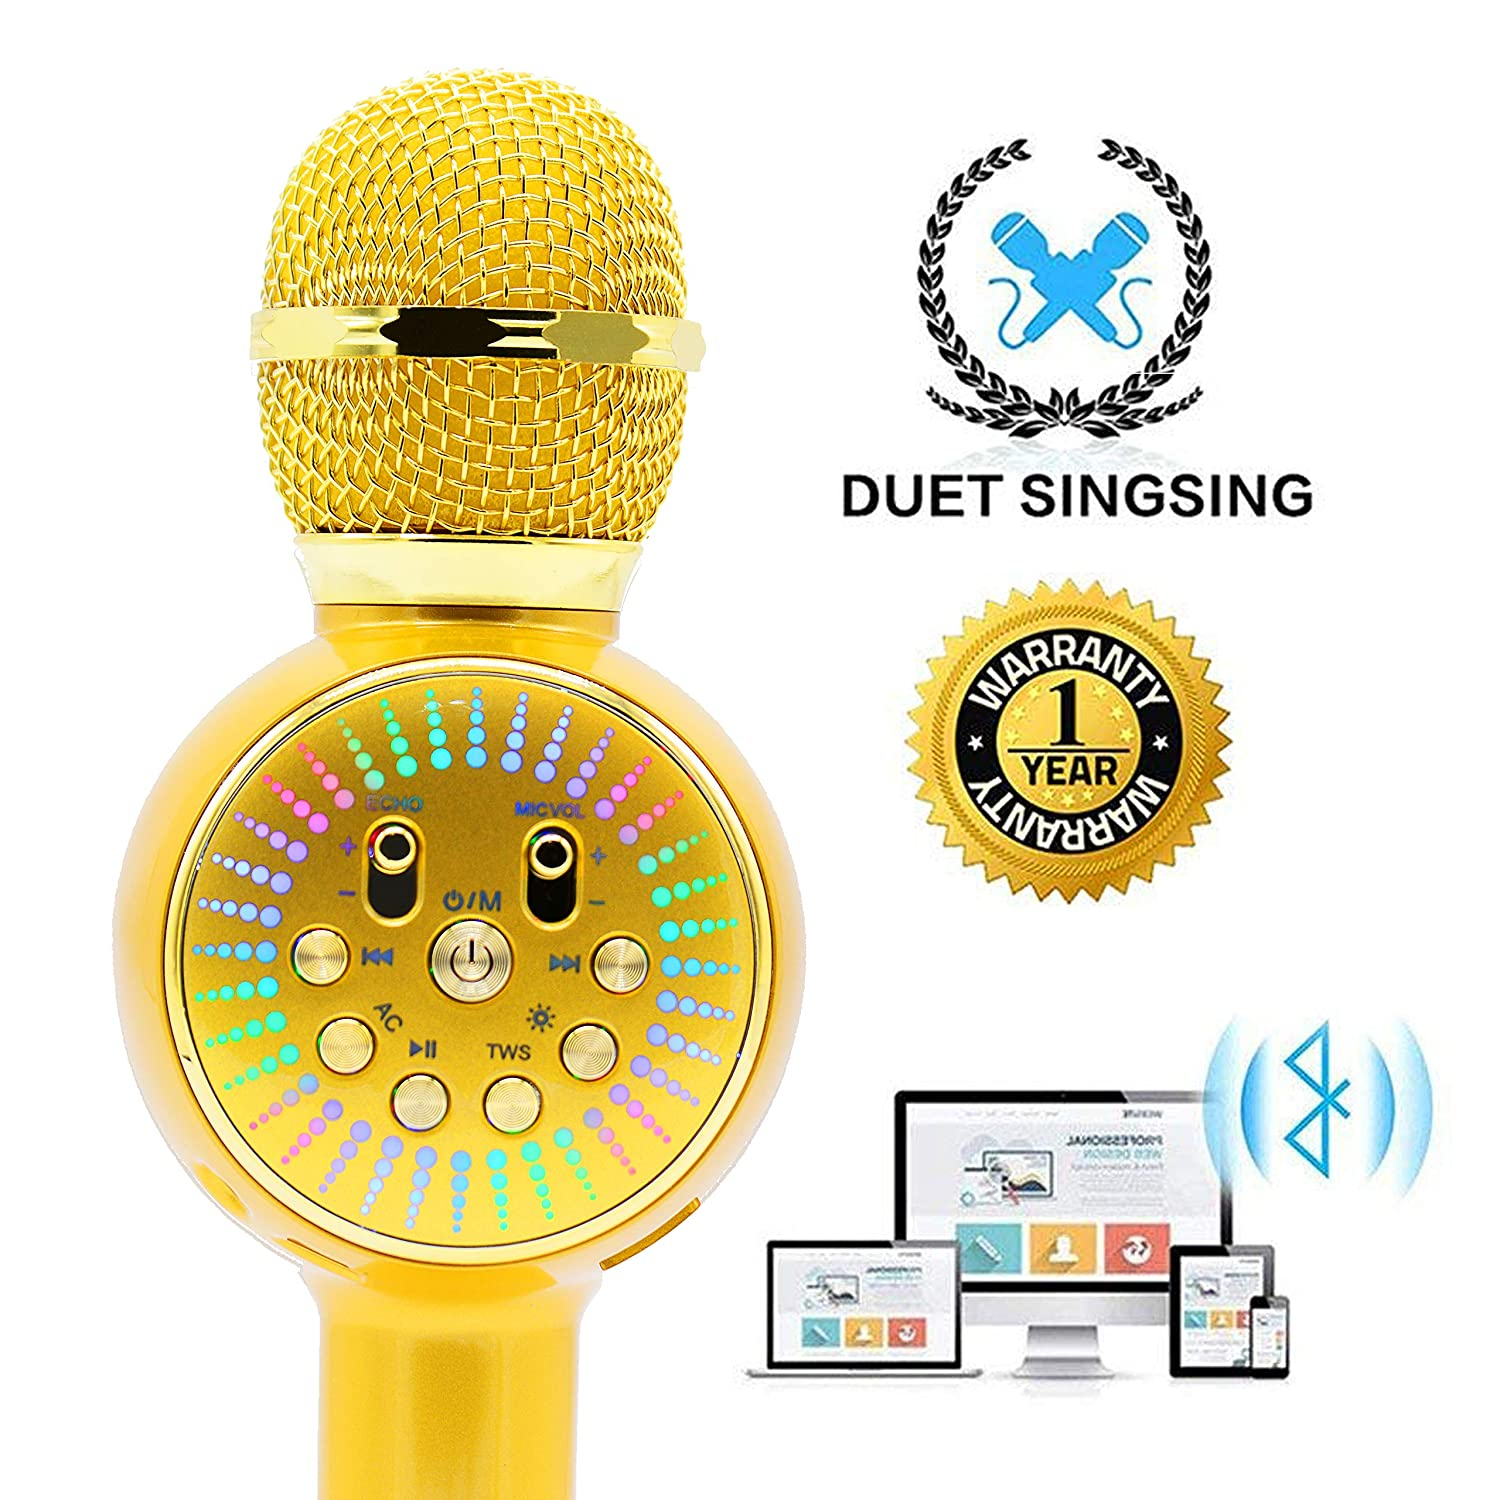 Sanovo 2019 Wireless Karaoke Microphone Speaker With LED lights 3-in-1 Portable Hand Microphone For Kids Gift Party iPhone iPad Android Smartphone Smart TV Home KTV Pink